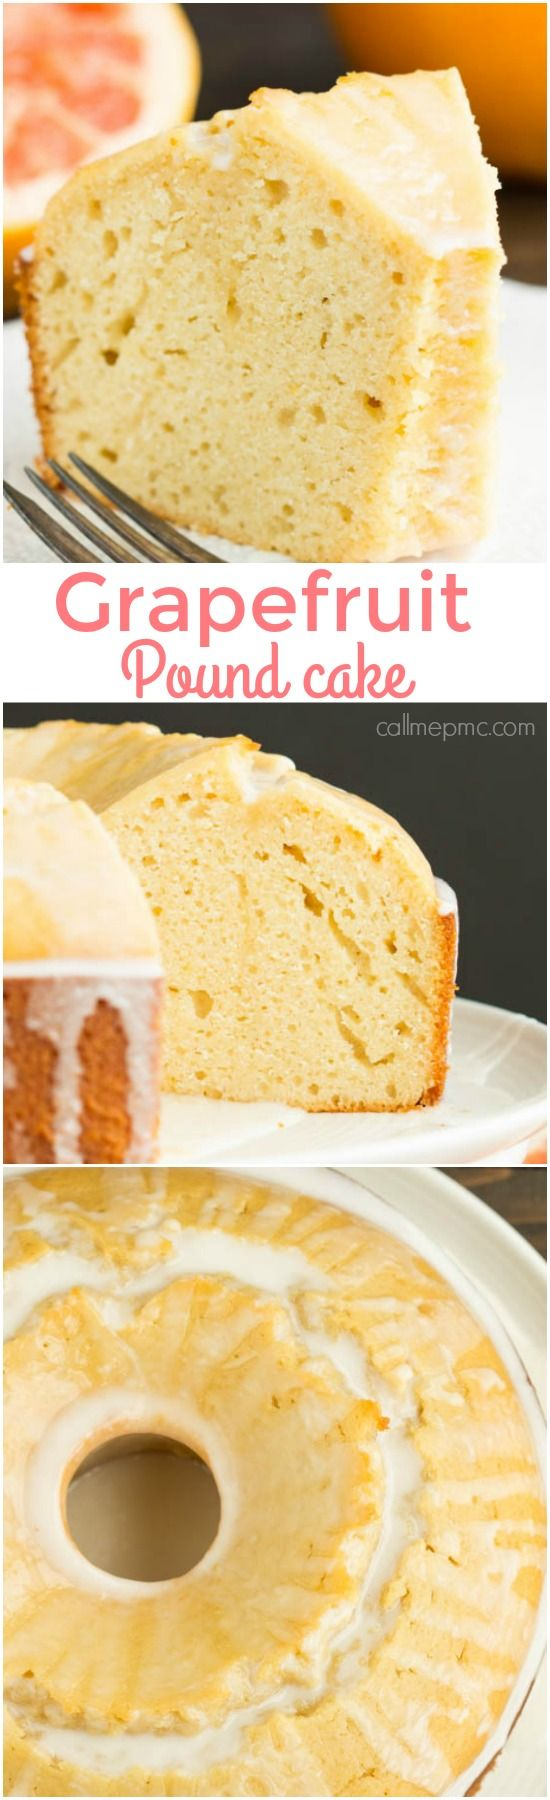 Ruby Red Grapefruit Pound Cake recipe, tart and sweet, this dessert is inventive, interesting, and unique.